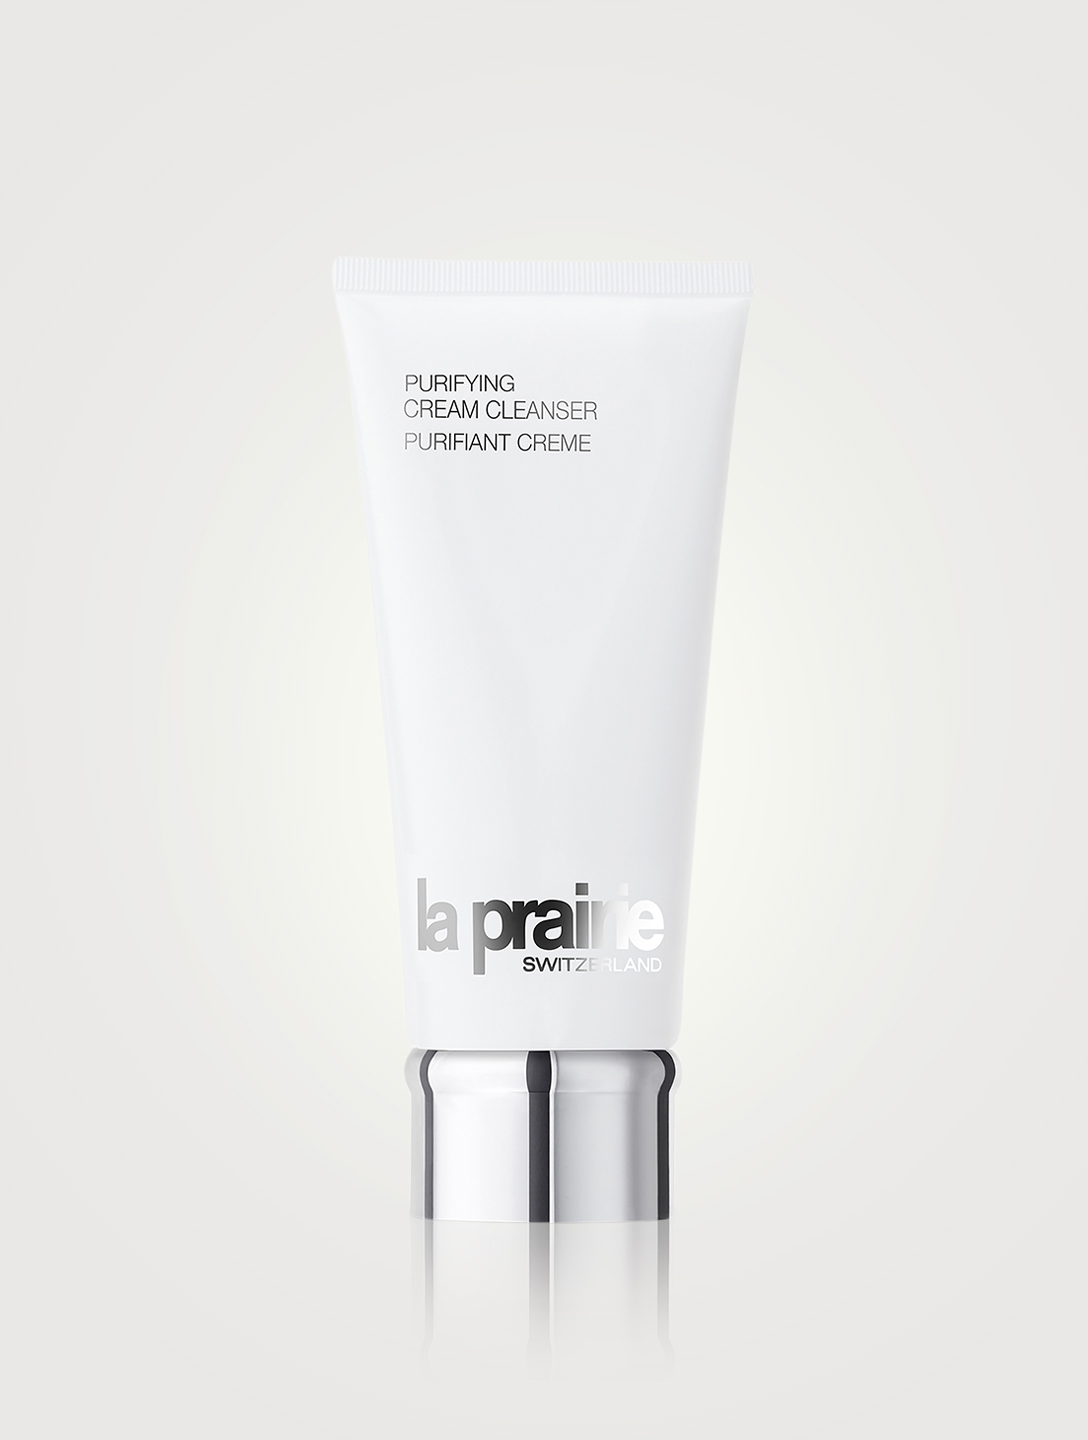 LA PRAIRIE Purifying Cream Cleanser Beauty